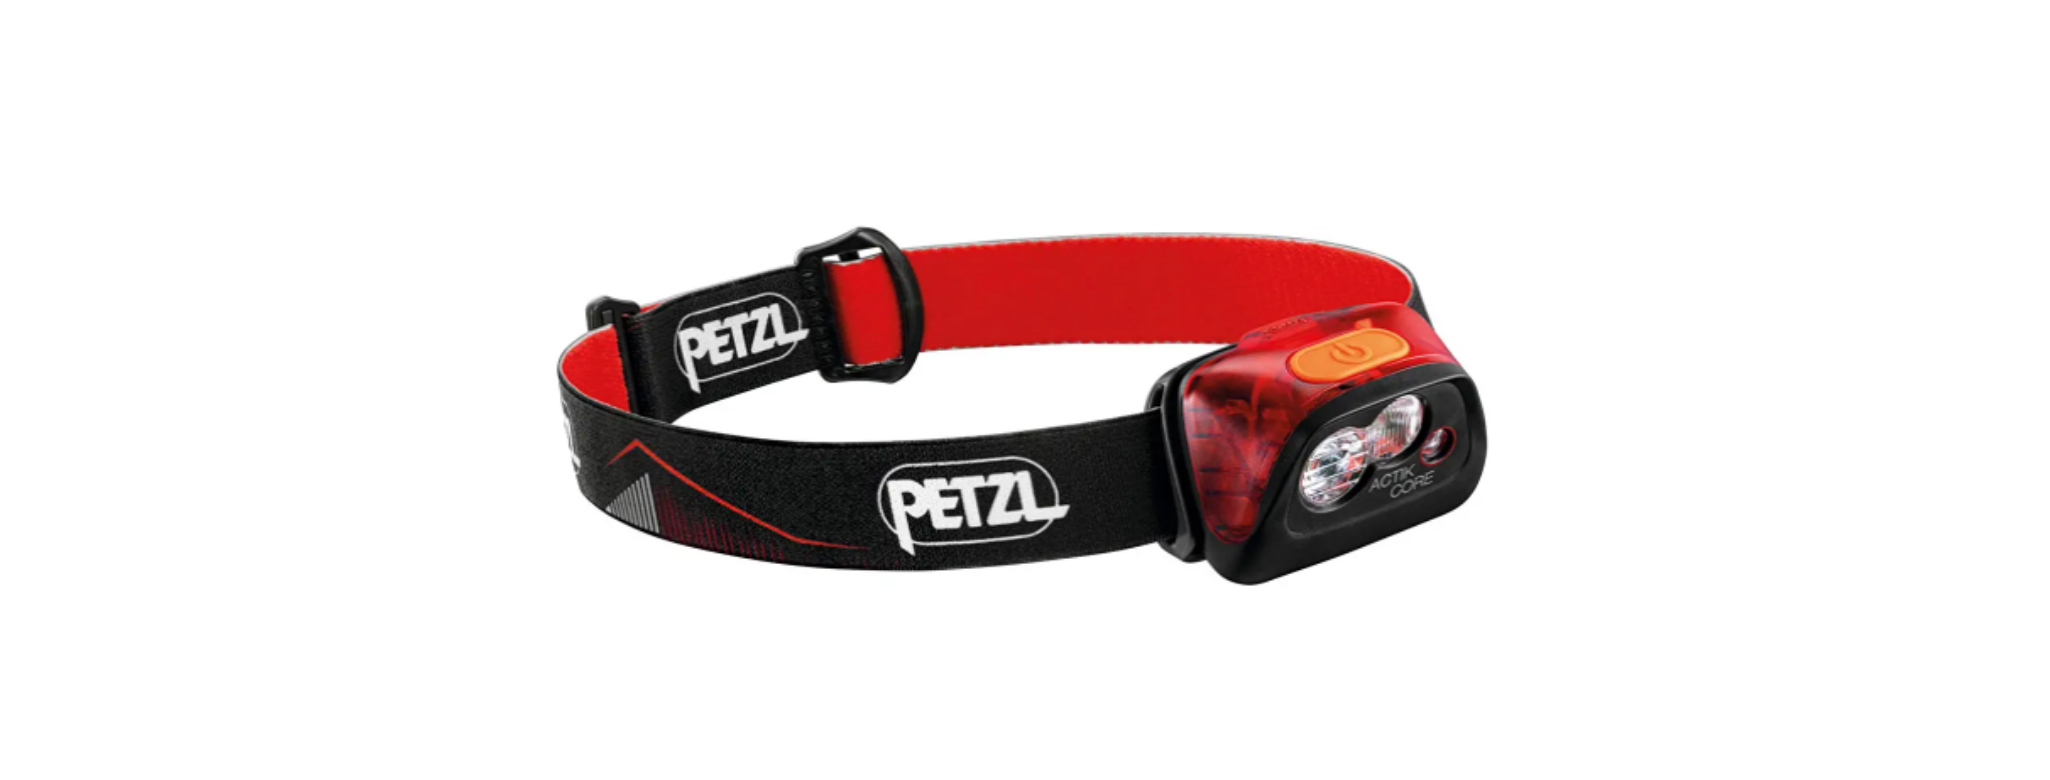 headtorch gifts for photographers